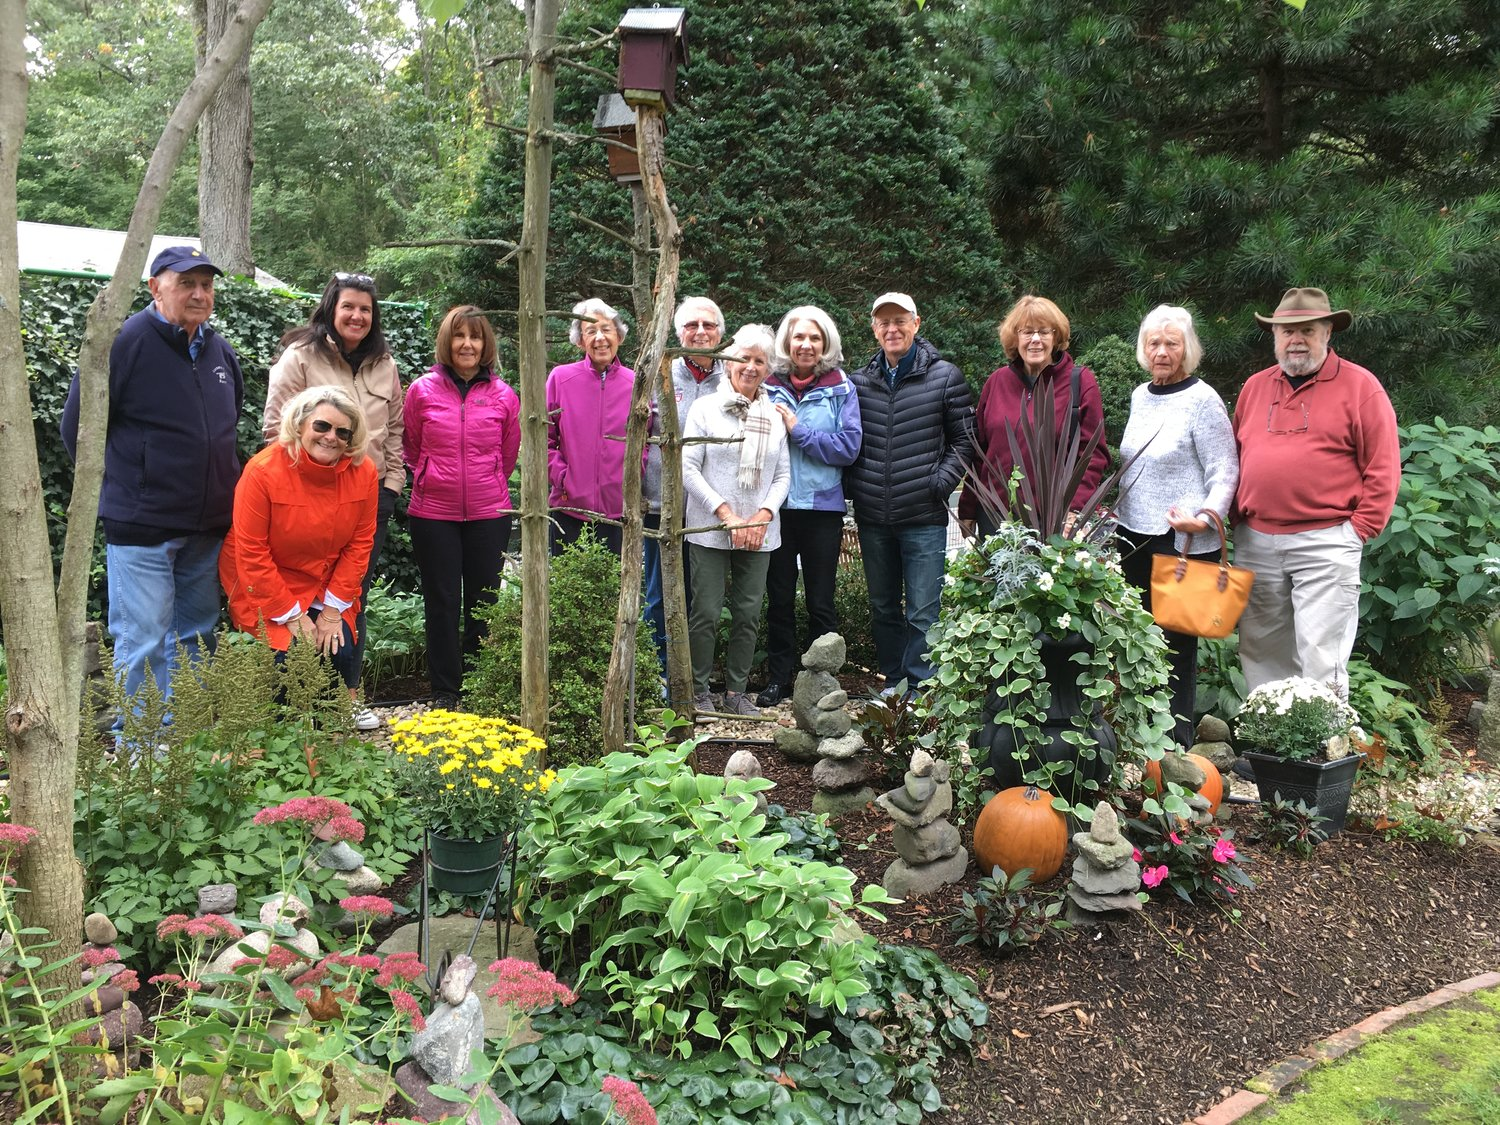 Some of the members of the Barrington Garden Club visit the Seekonk garden of David Murray, standing at far right.